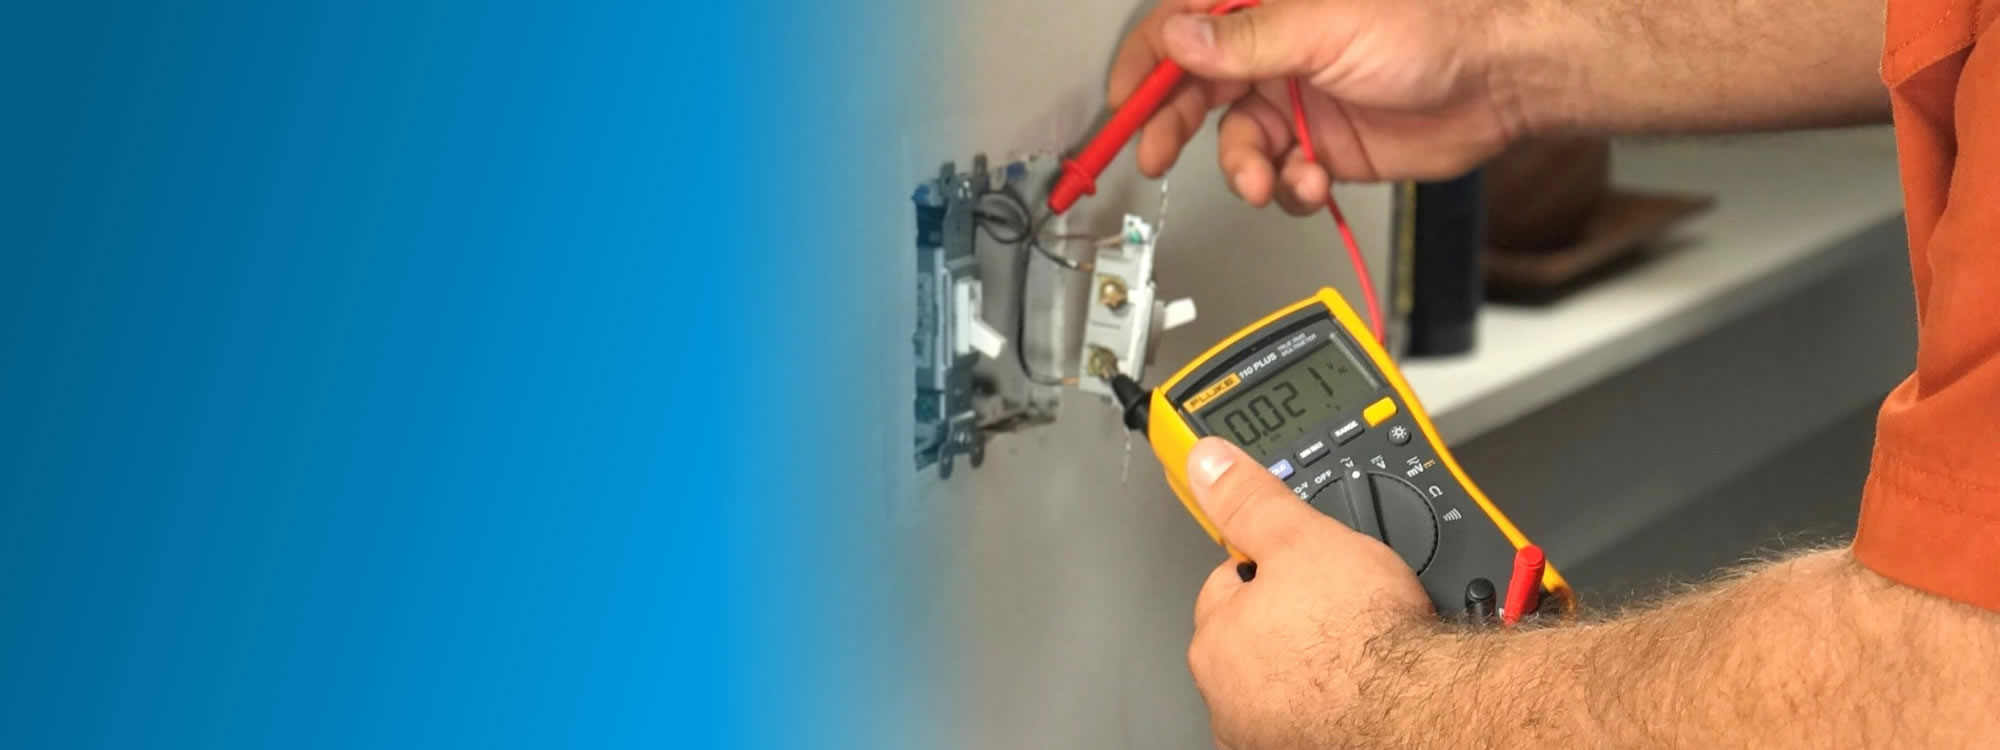 Electrician-–-Fix-The-Electrical-Issues.jpg